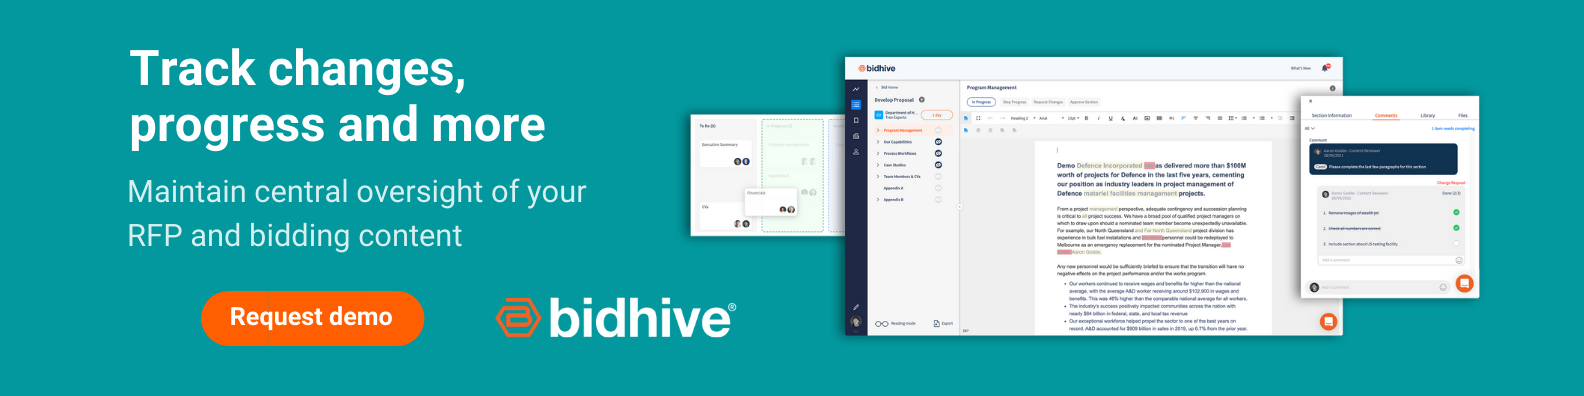 Track changes and progress with Bidhive